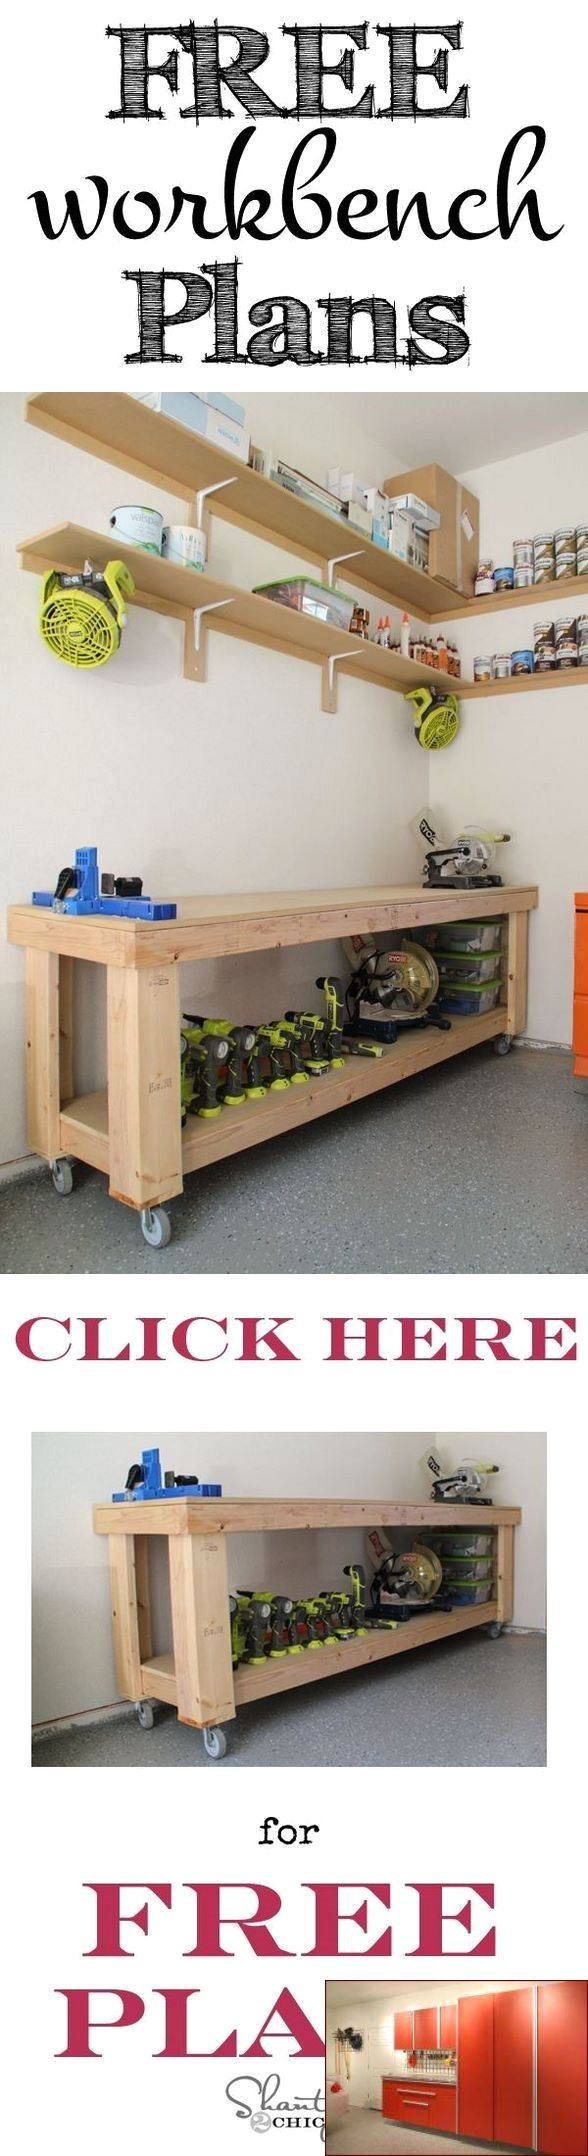 Xtreme Garage Storage Cabinet And Pics Of Garage Organization Cincinnati Garagestorage Diygaragestorage Workbench Plans Diy Workbench Woodworking Projects